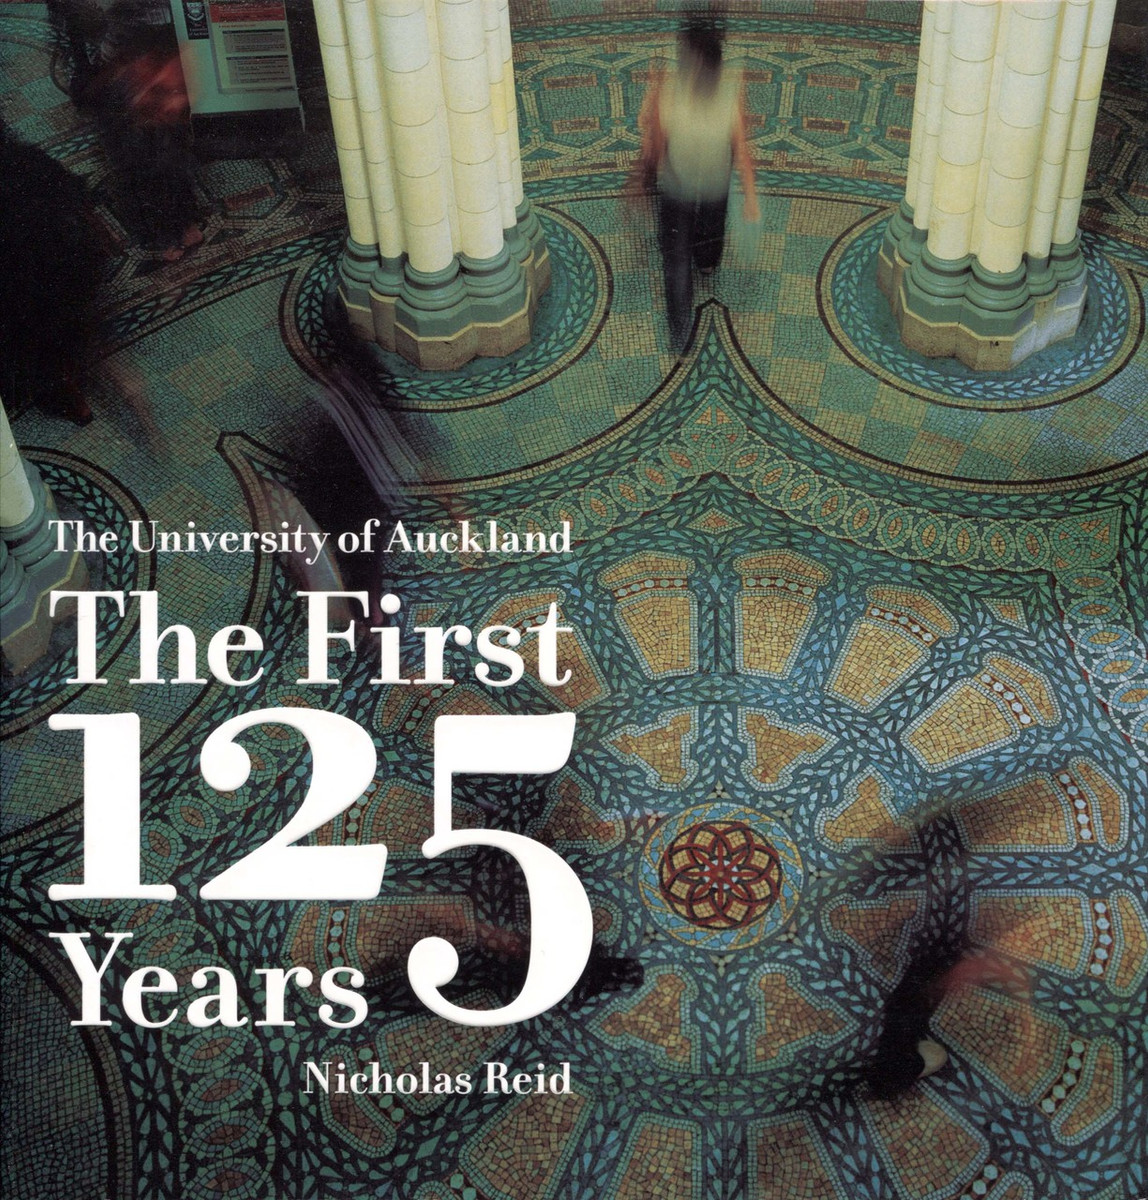 The University of Auckland: The First 125 Years by Nicholas Reid